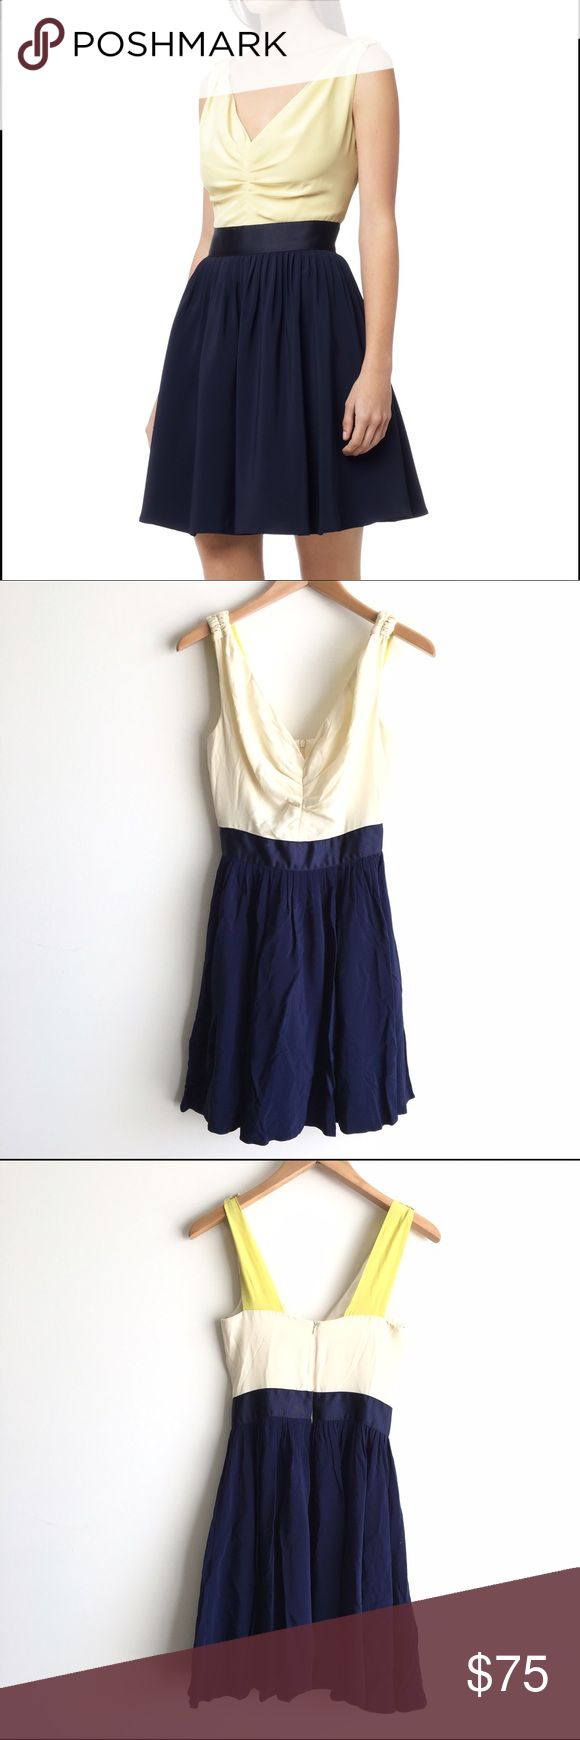 REISS Priya Colorblock Dress in Navy Perfect for prom or a wedding! Sleeveless lined dress. Colorblock off white, ruched front body, navy blue skirt and chartreuse straps. Zipper closure on the back. Excellent condition. Reiss Dresses Prom